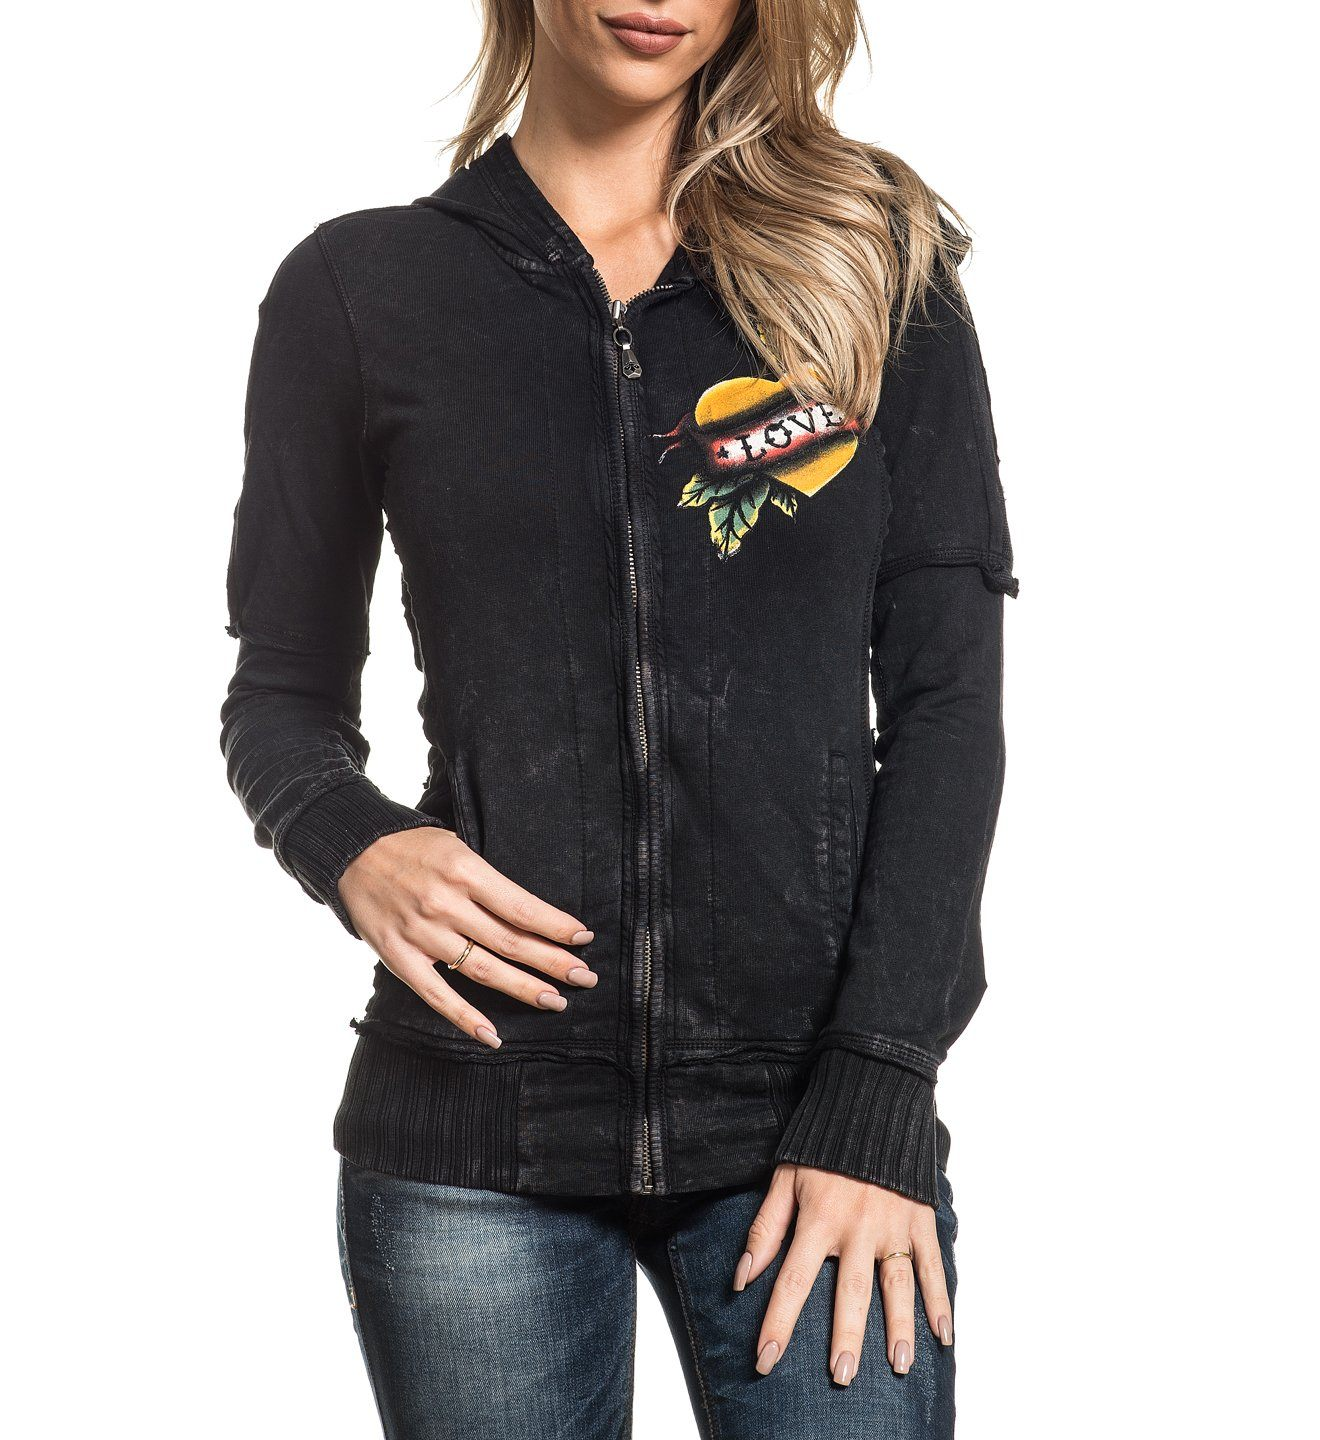 Womens Hooded Sweatshirts - True Love Zip Hood